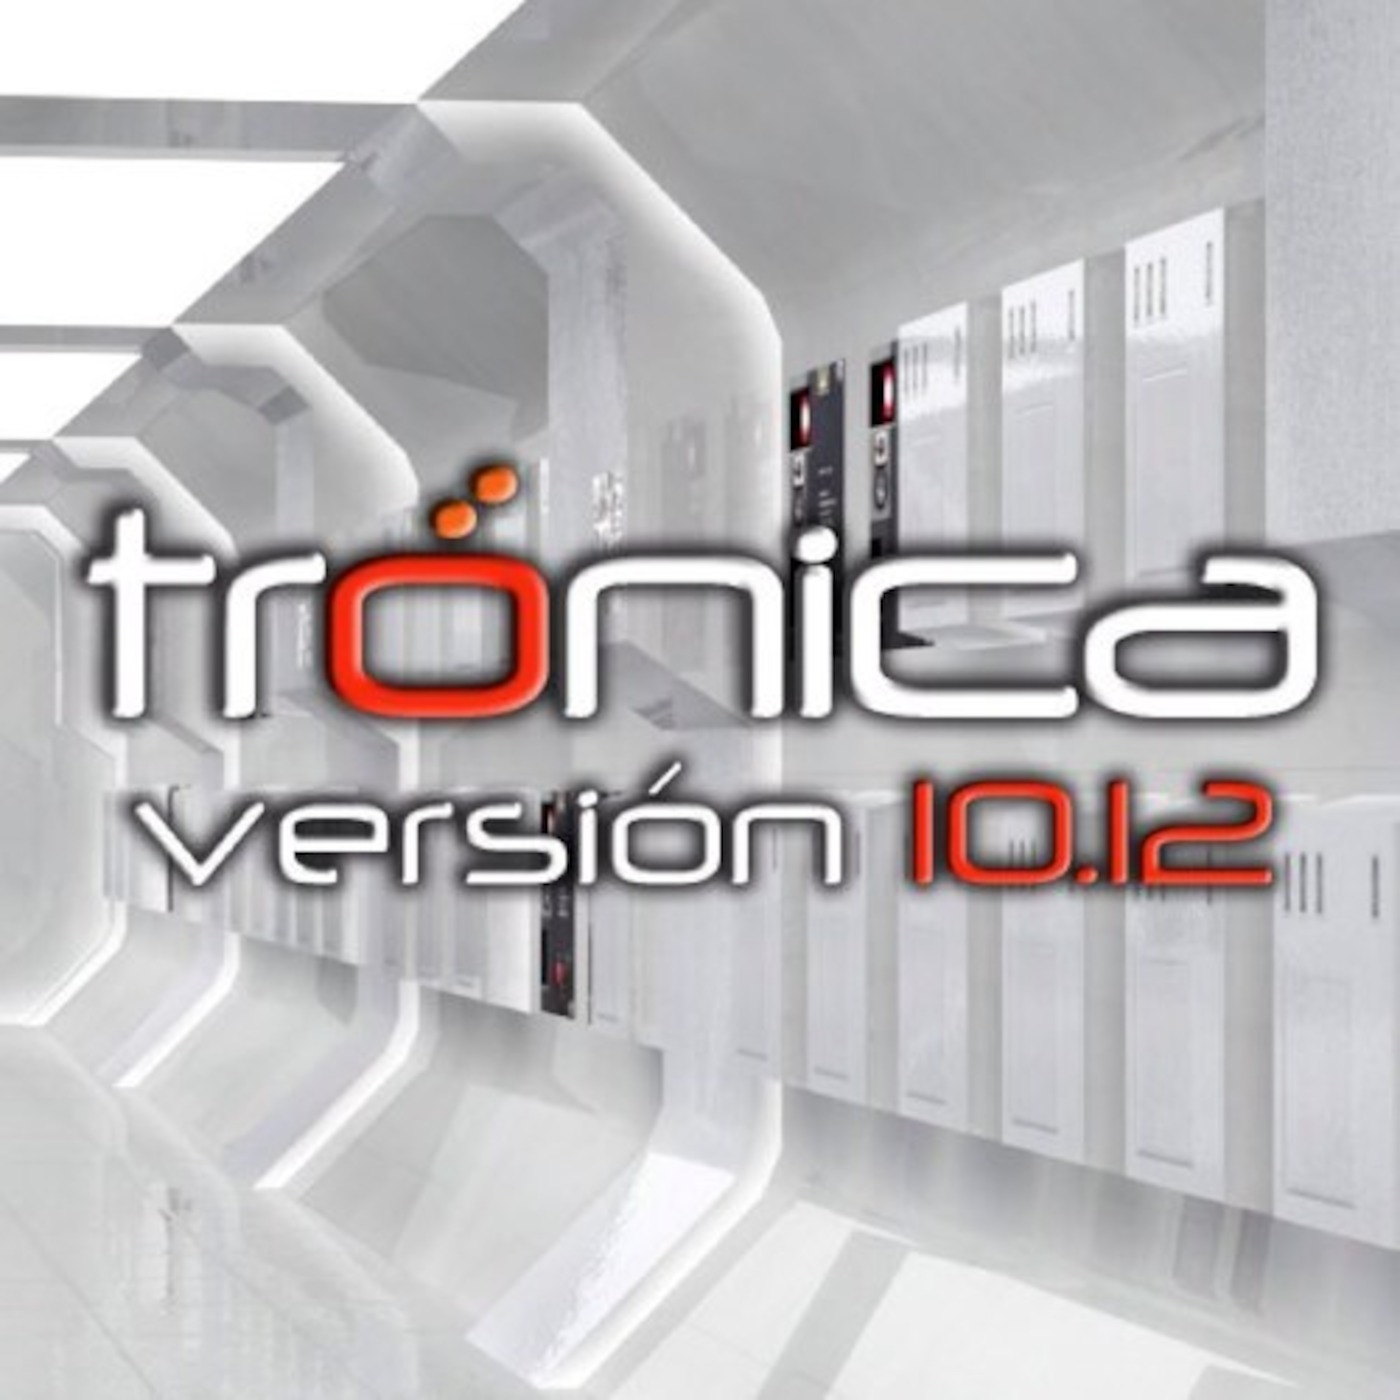 Tronica podcast